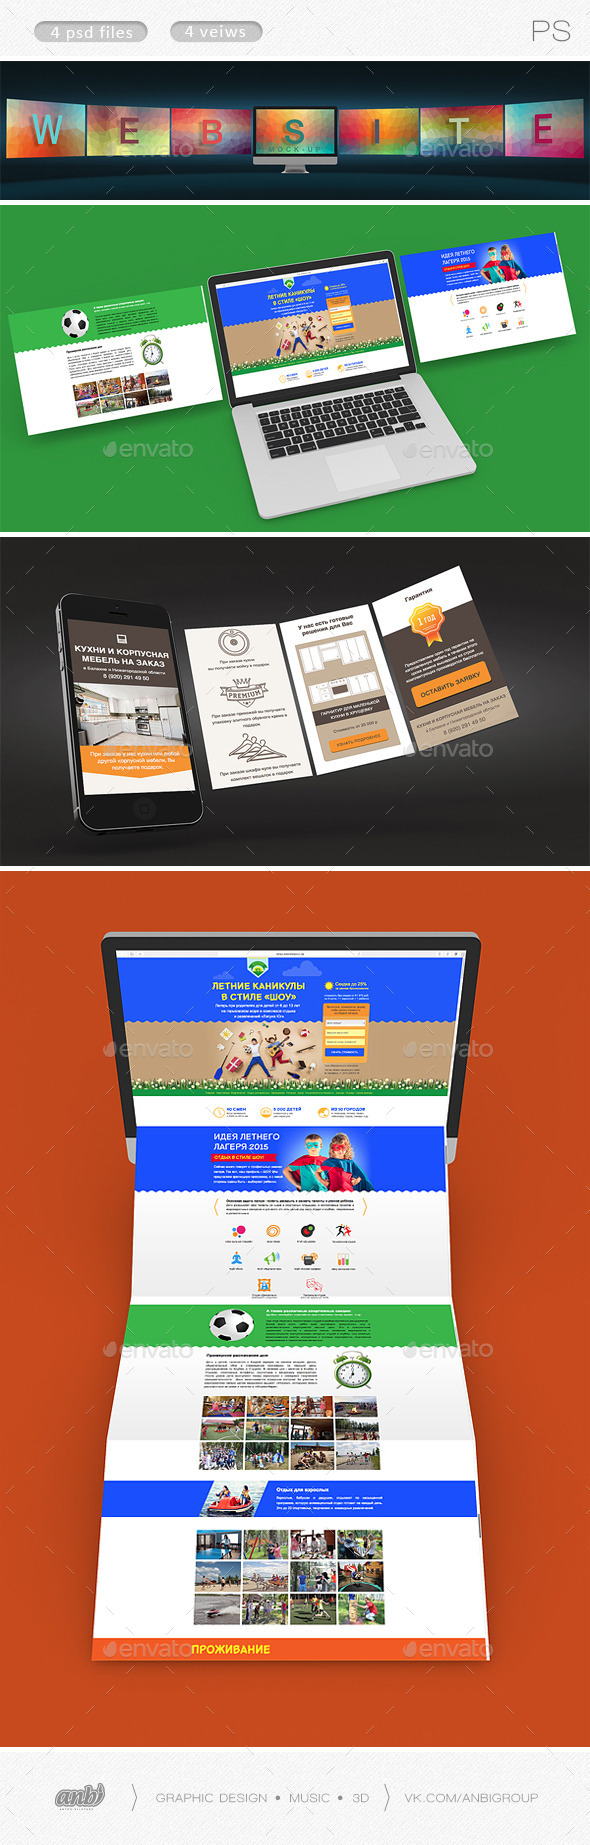 GraphicRiver Web site Mock-up 11310412